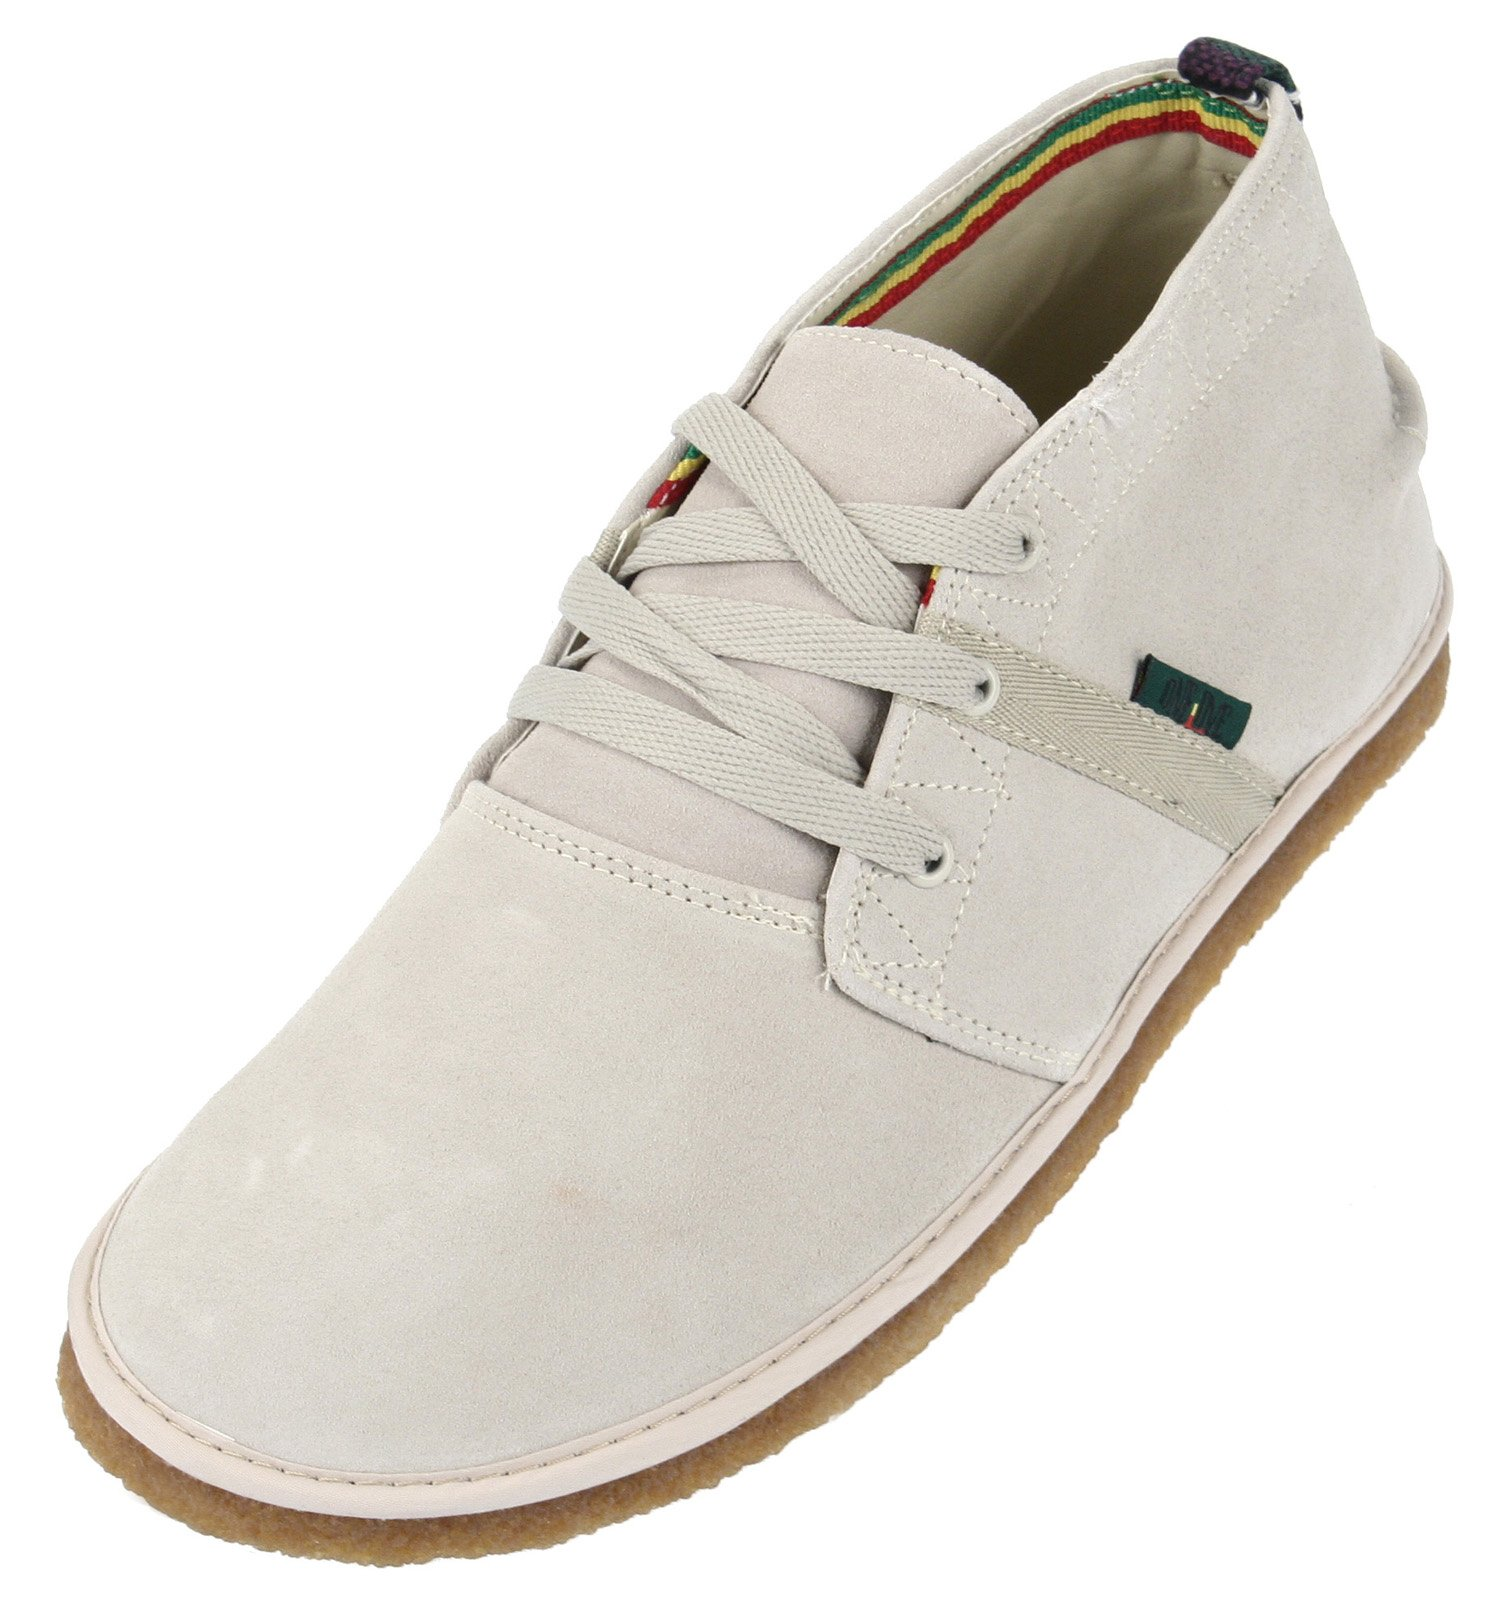 Bob Marley One Love Pipeline Casual Mens Lace up Shoes (11 US Mens, Sand Suede)